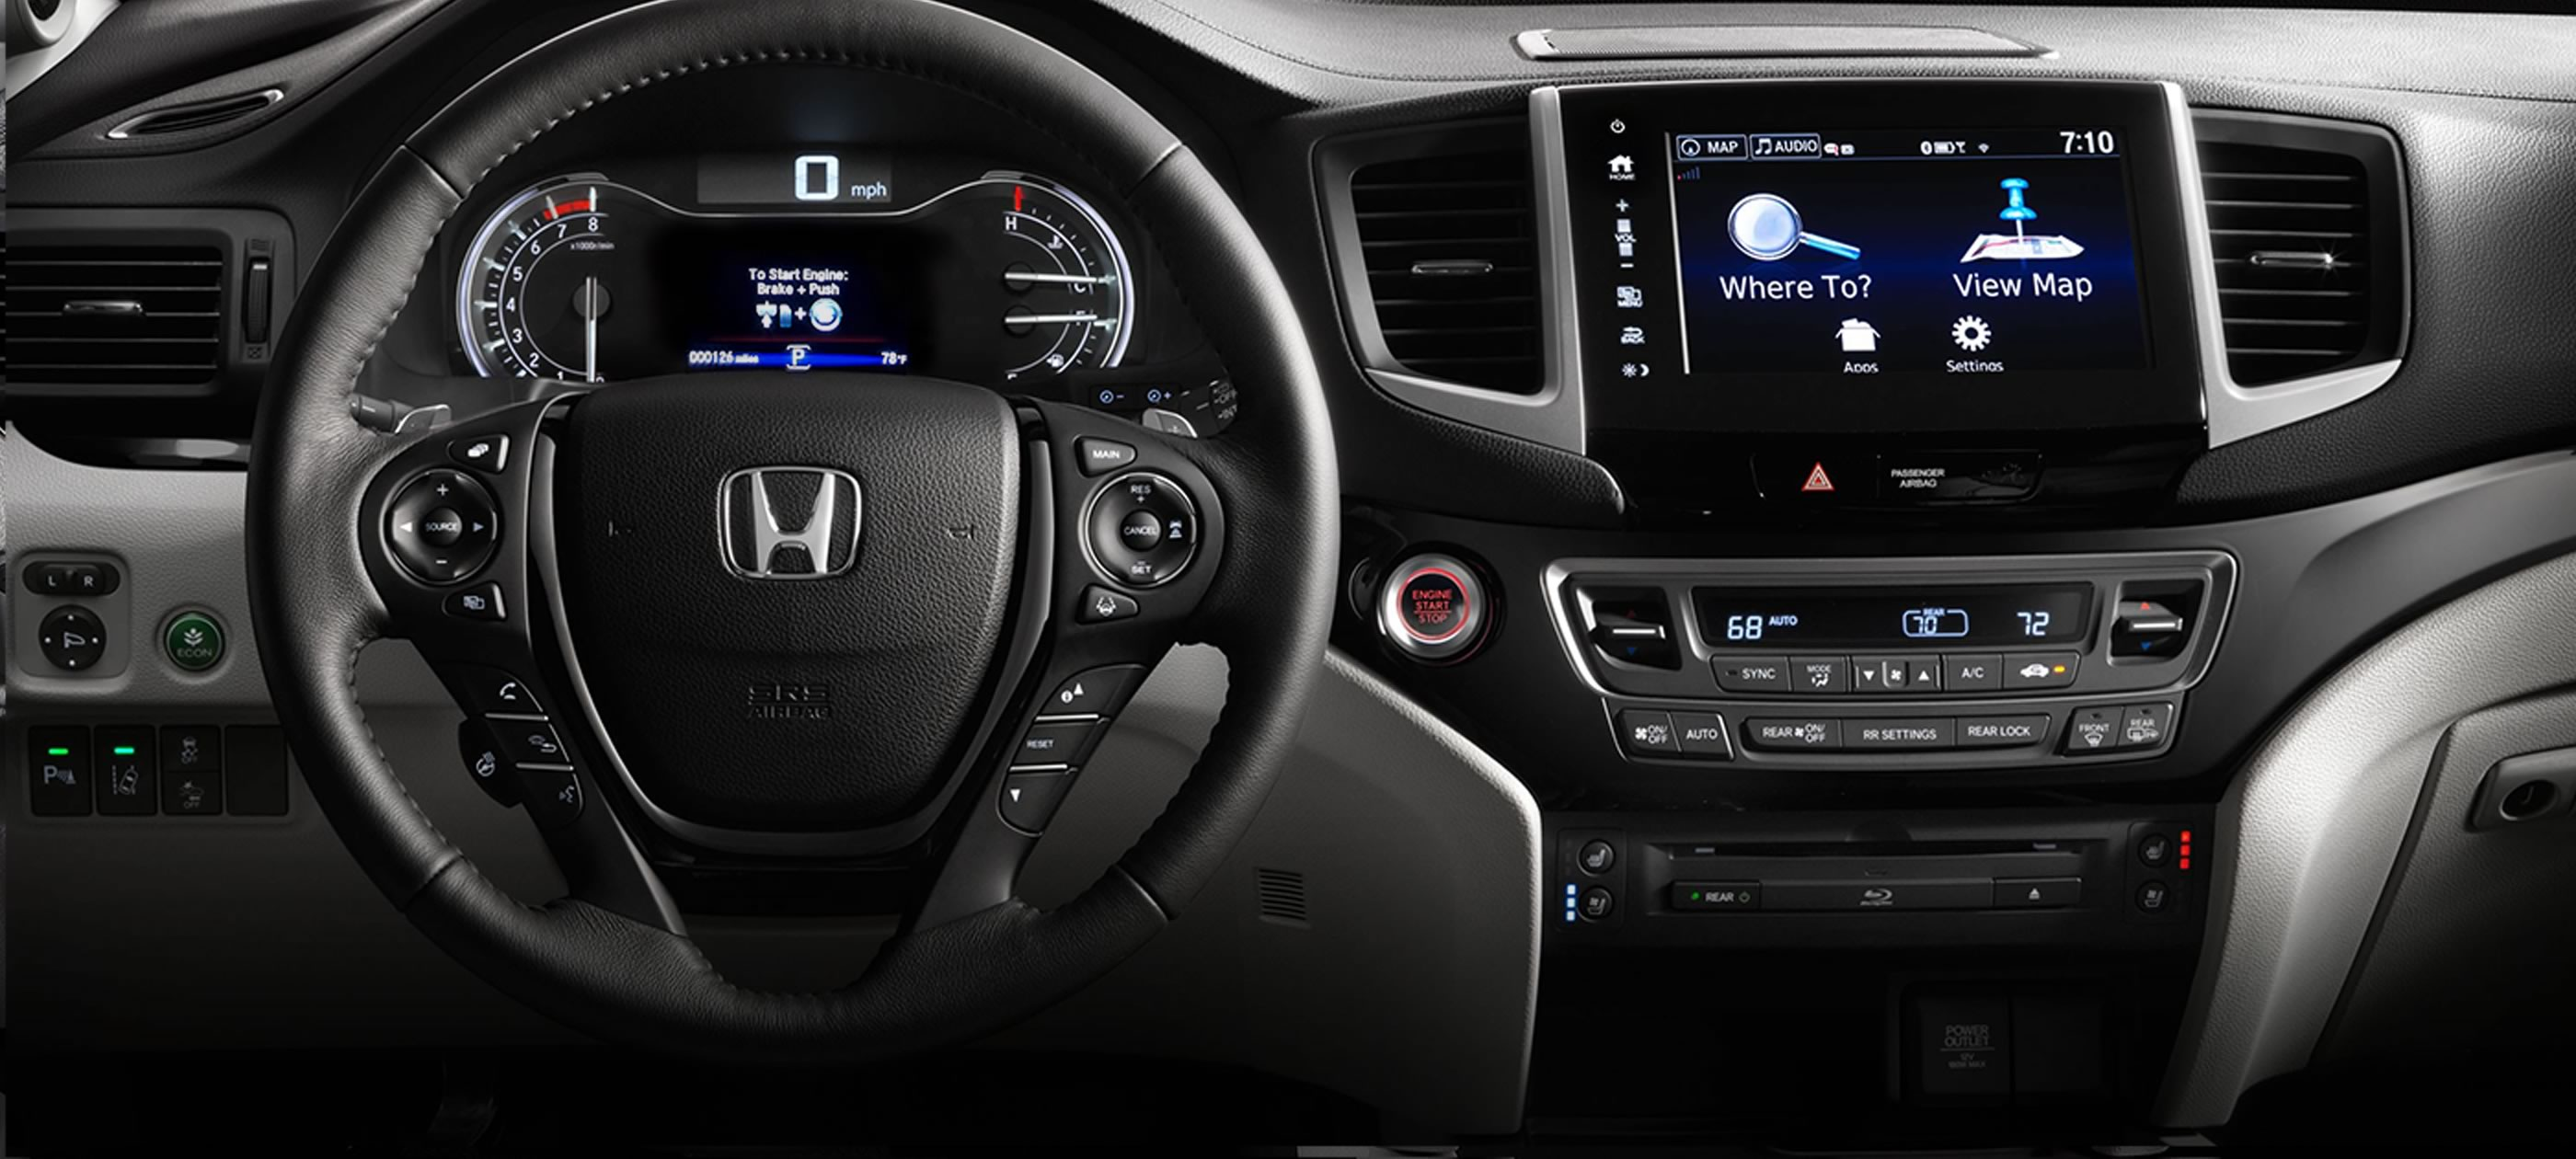 honda fingerprints roadshow carplay auto pilot android loses apple gains news